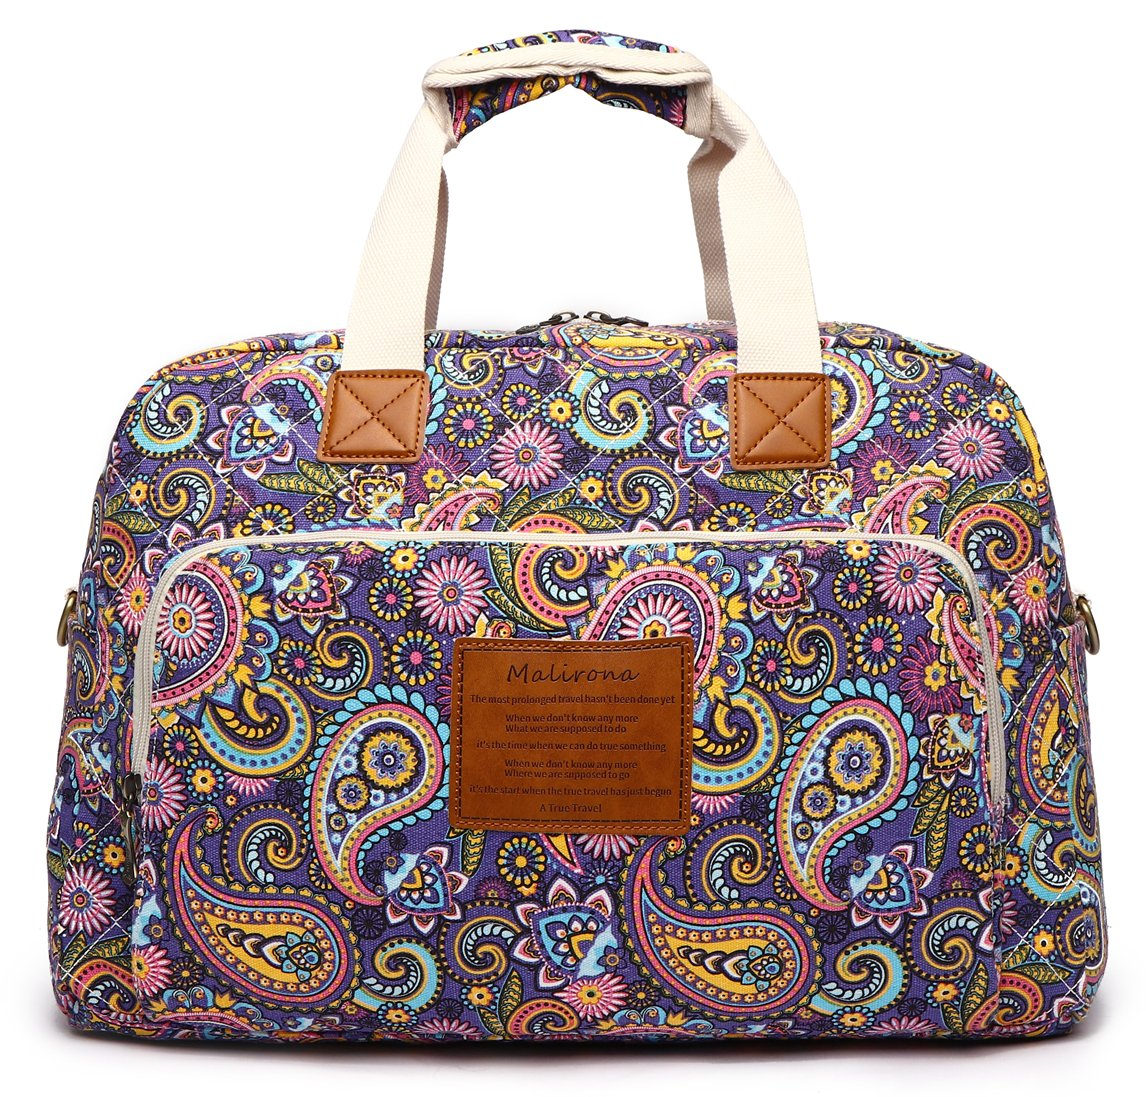 Malirona Canvas Overnight Bag Women Weekender Bag Carry On Travel Duffel Bag Floral (Purple Flower) by Malirona (Image #1)